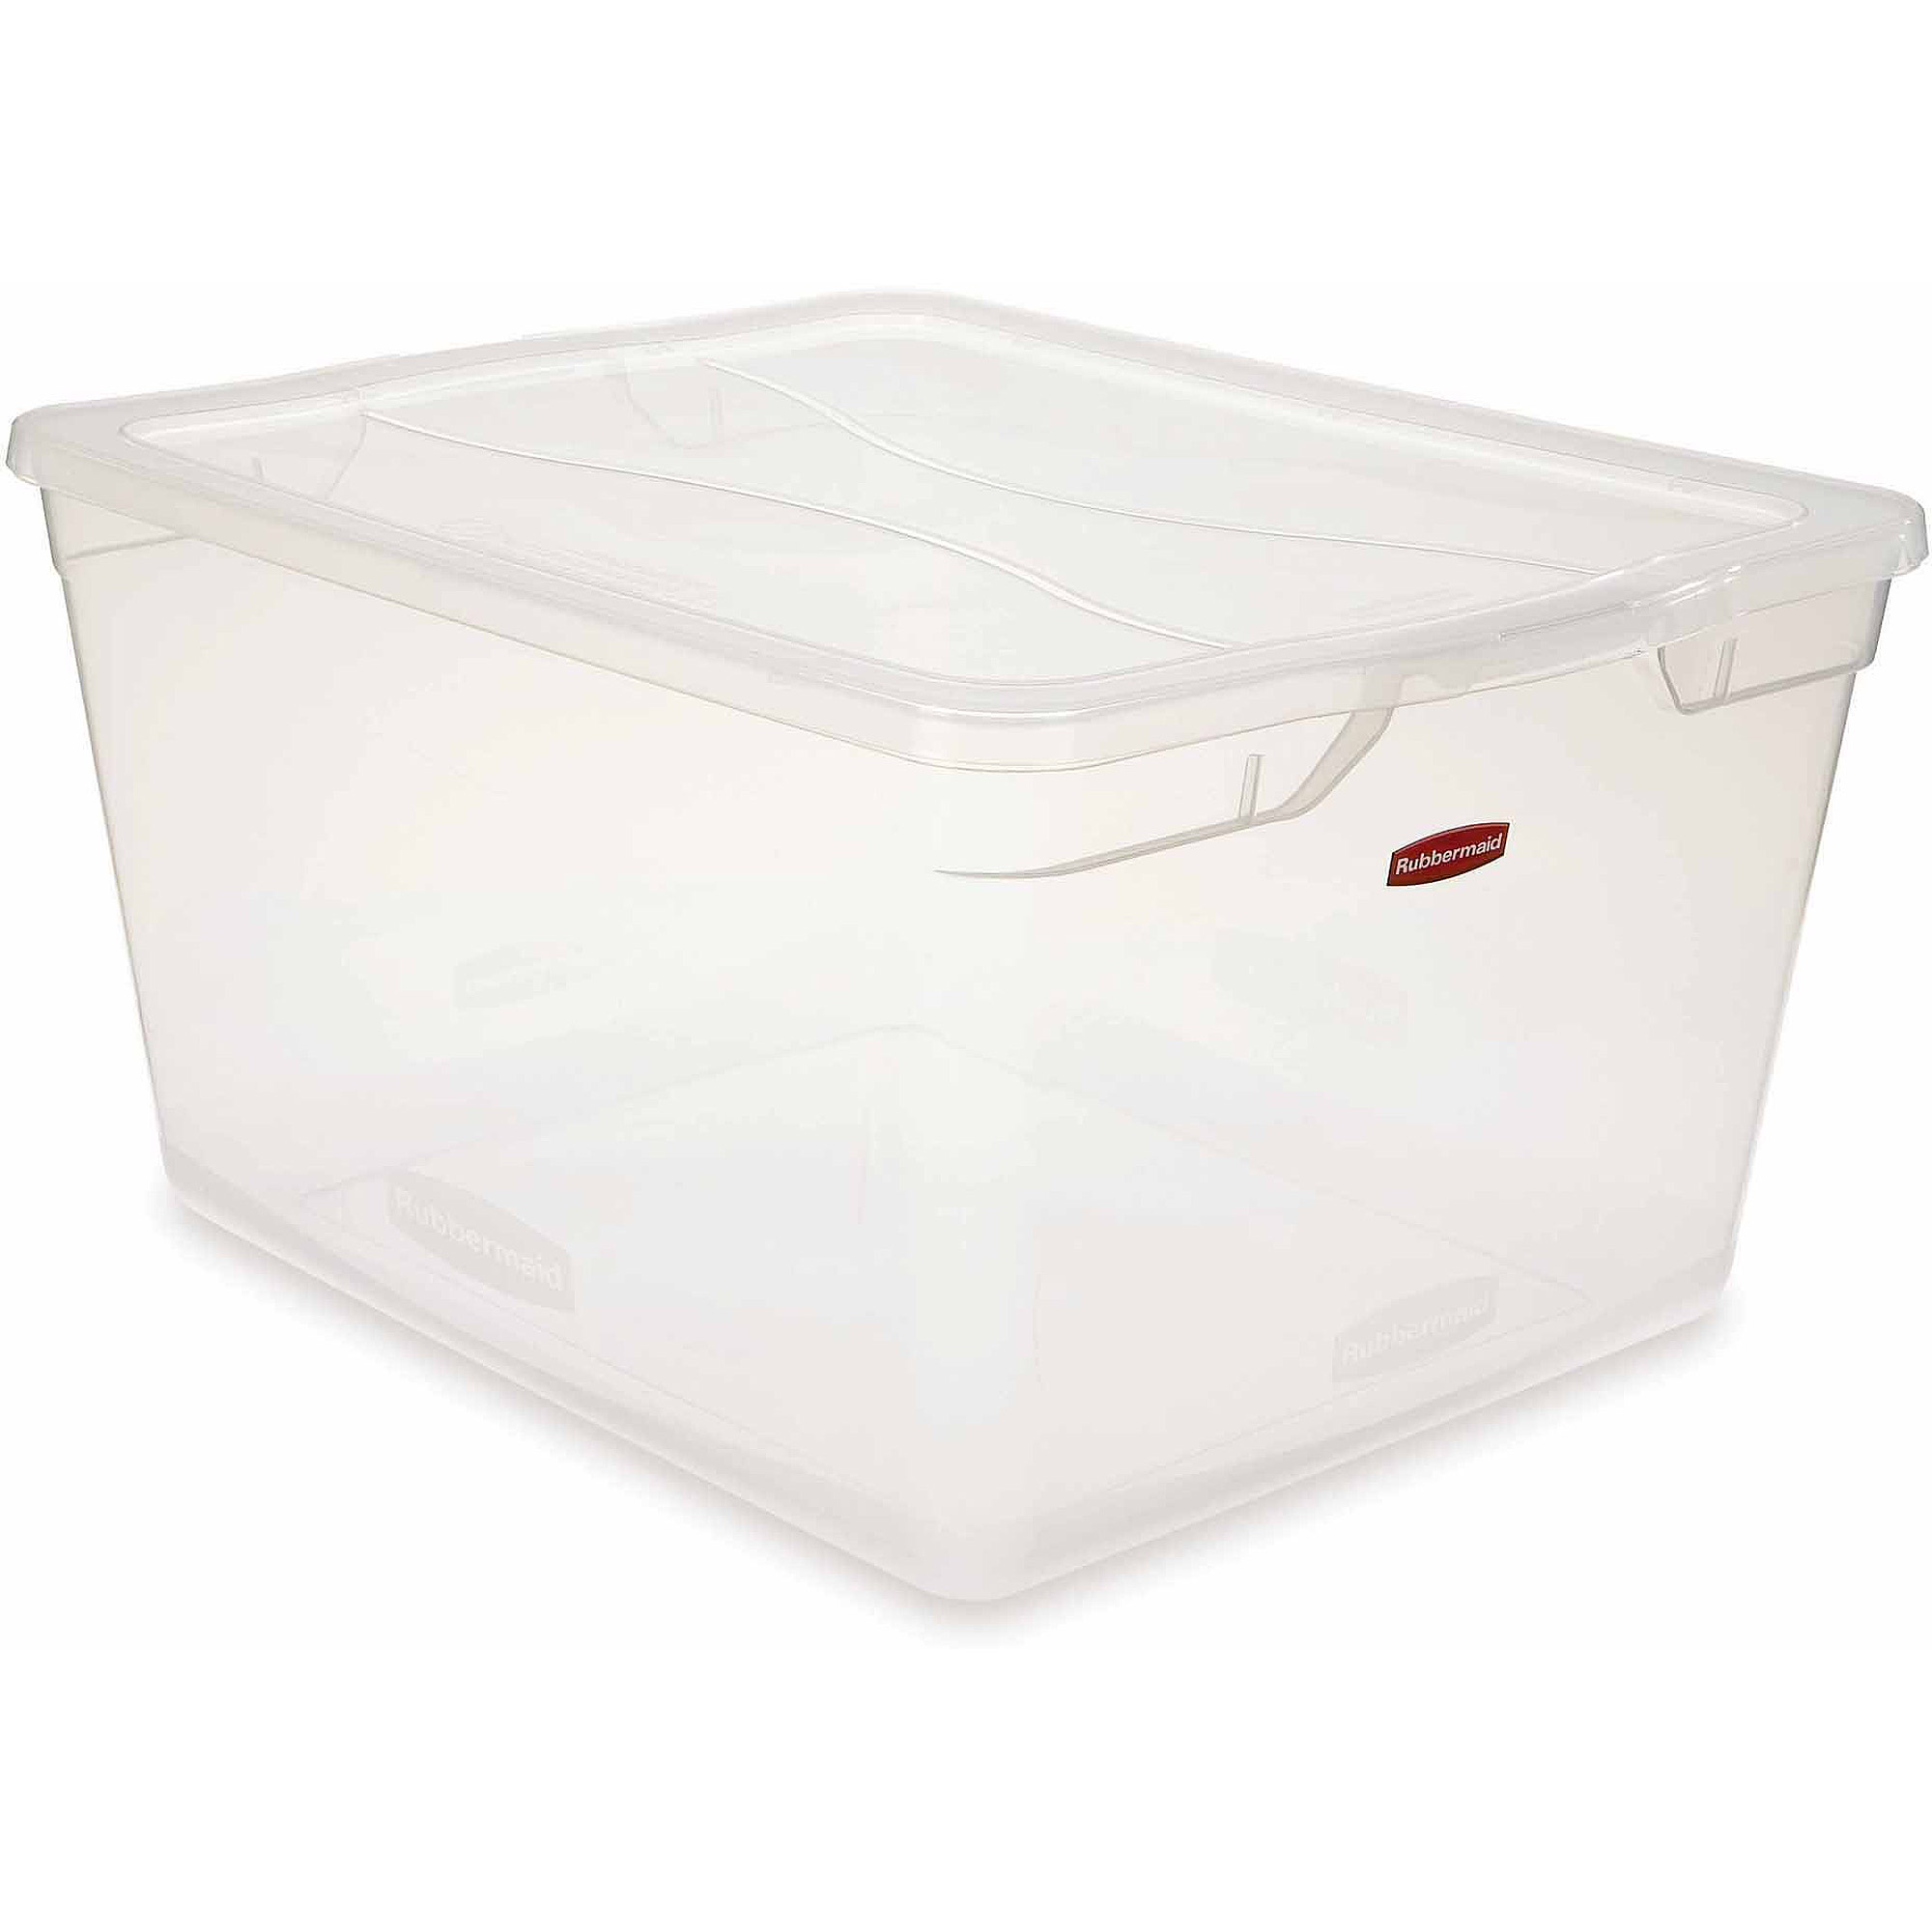 Rubbermaid Cleverstore Clear 71-Quart Non-Latching, Clear